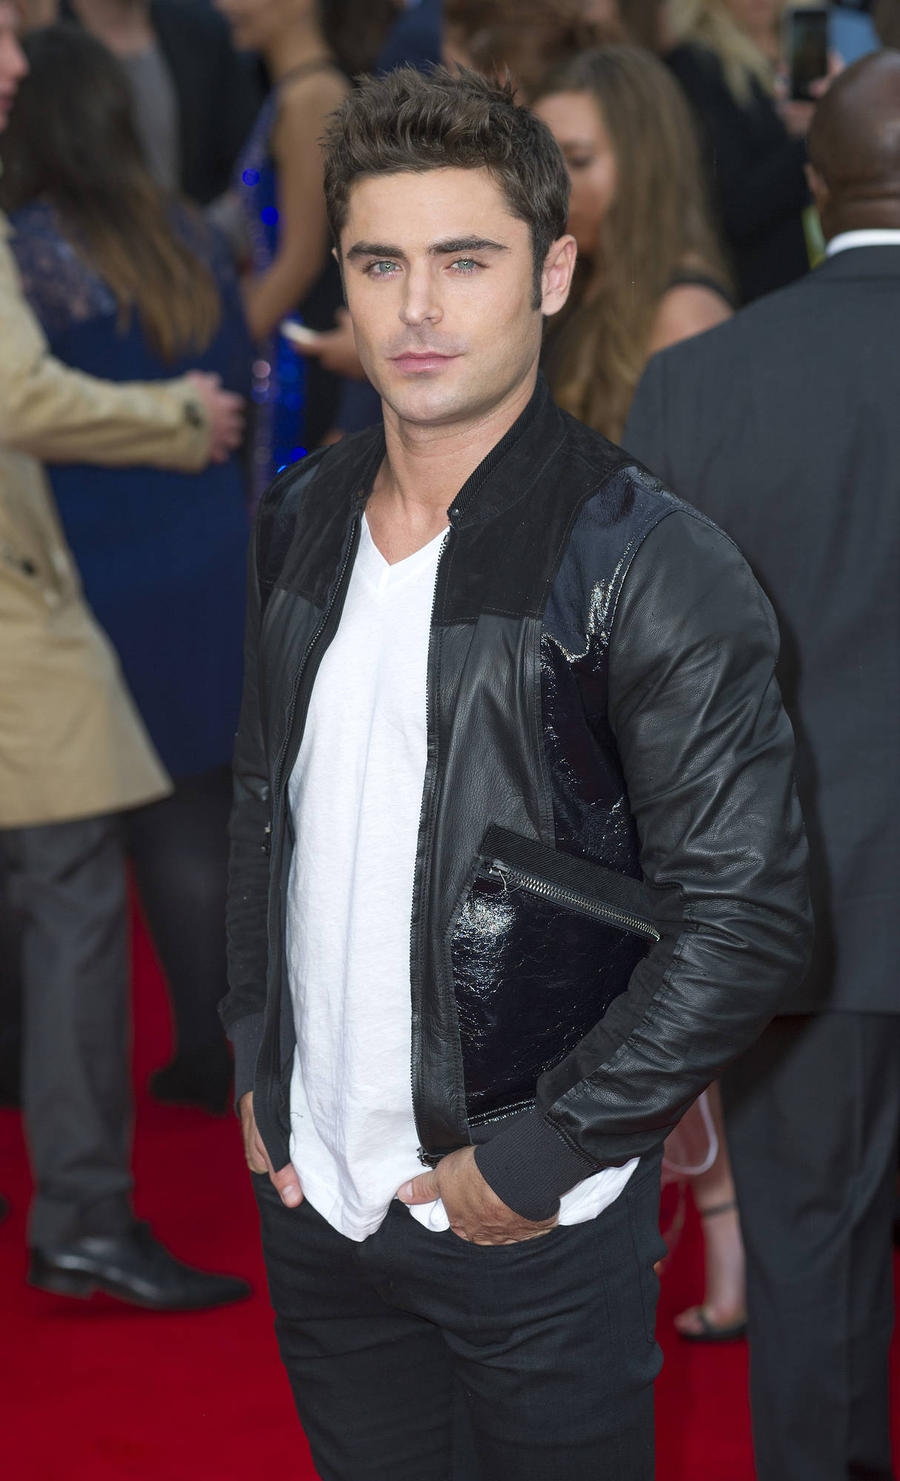 Zac Efron And Chris Hemsworth To Present Mtv Movie Awards